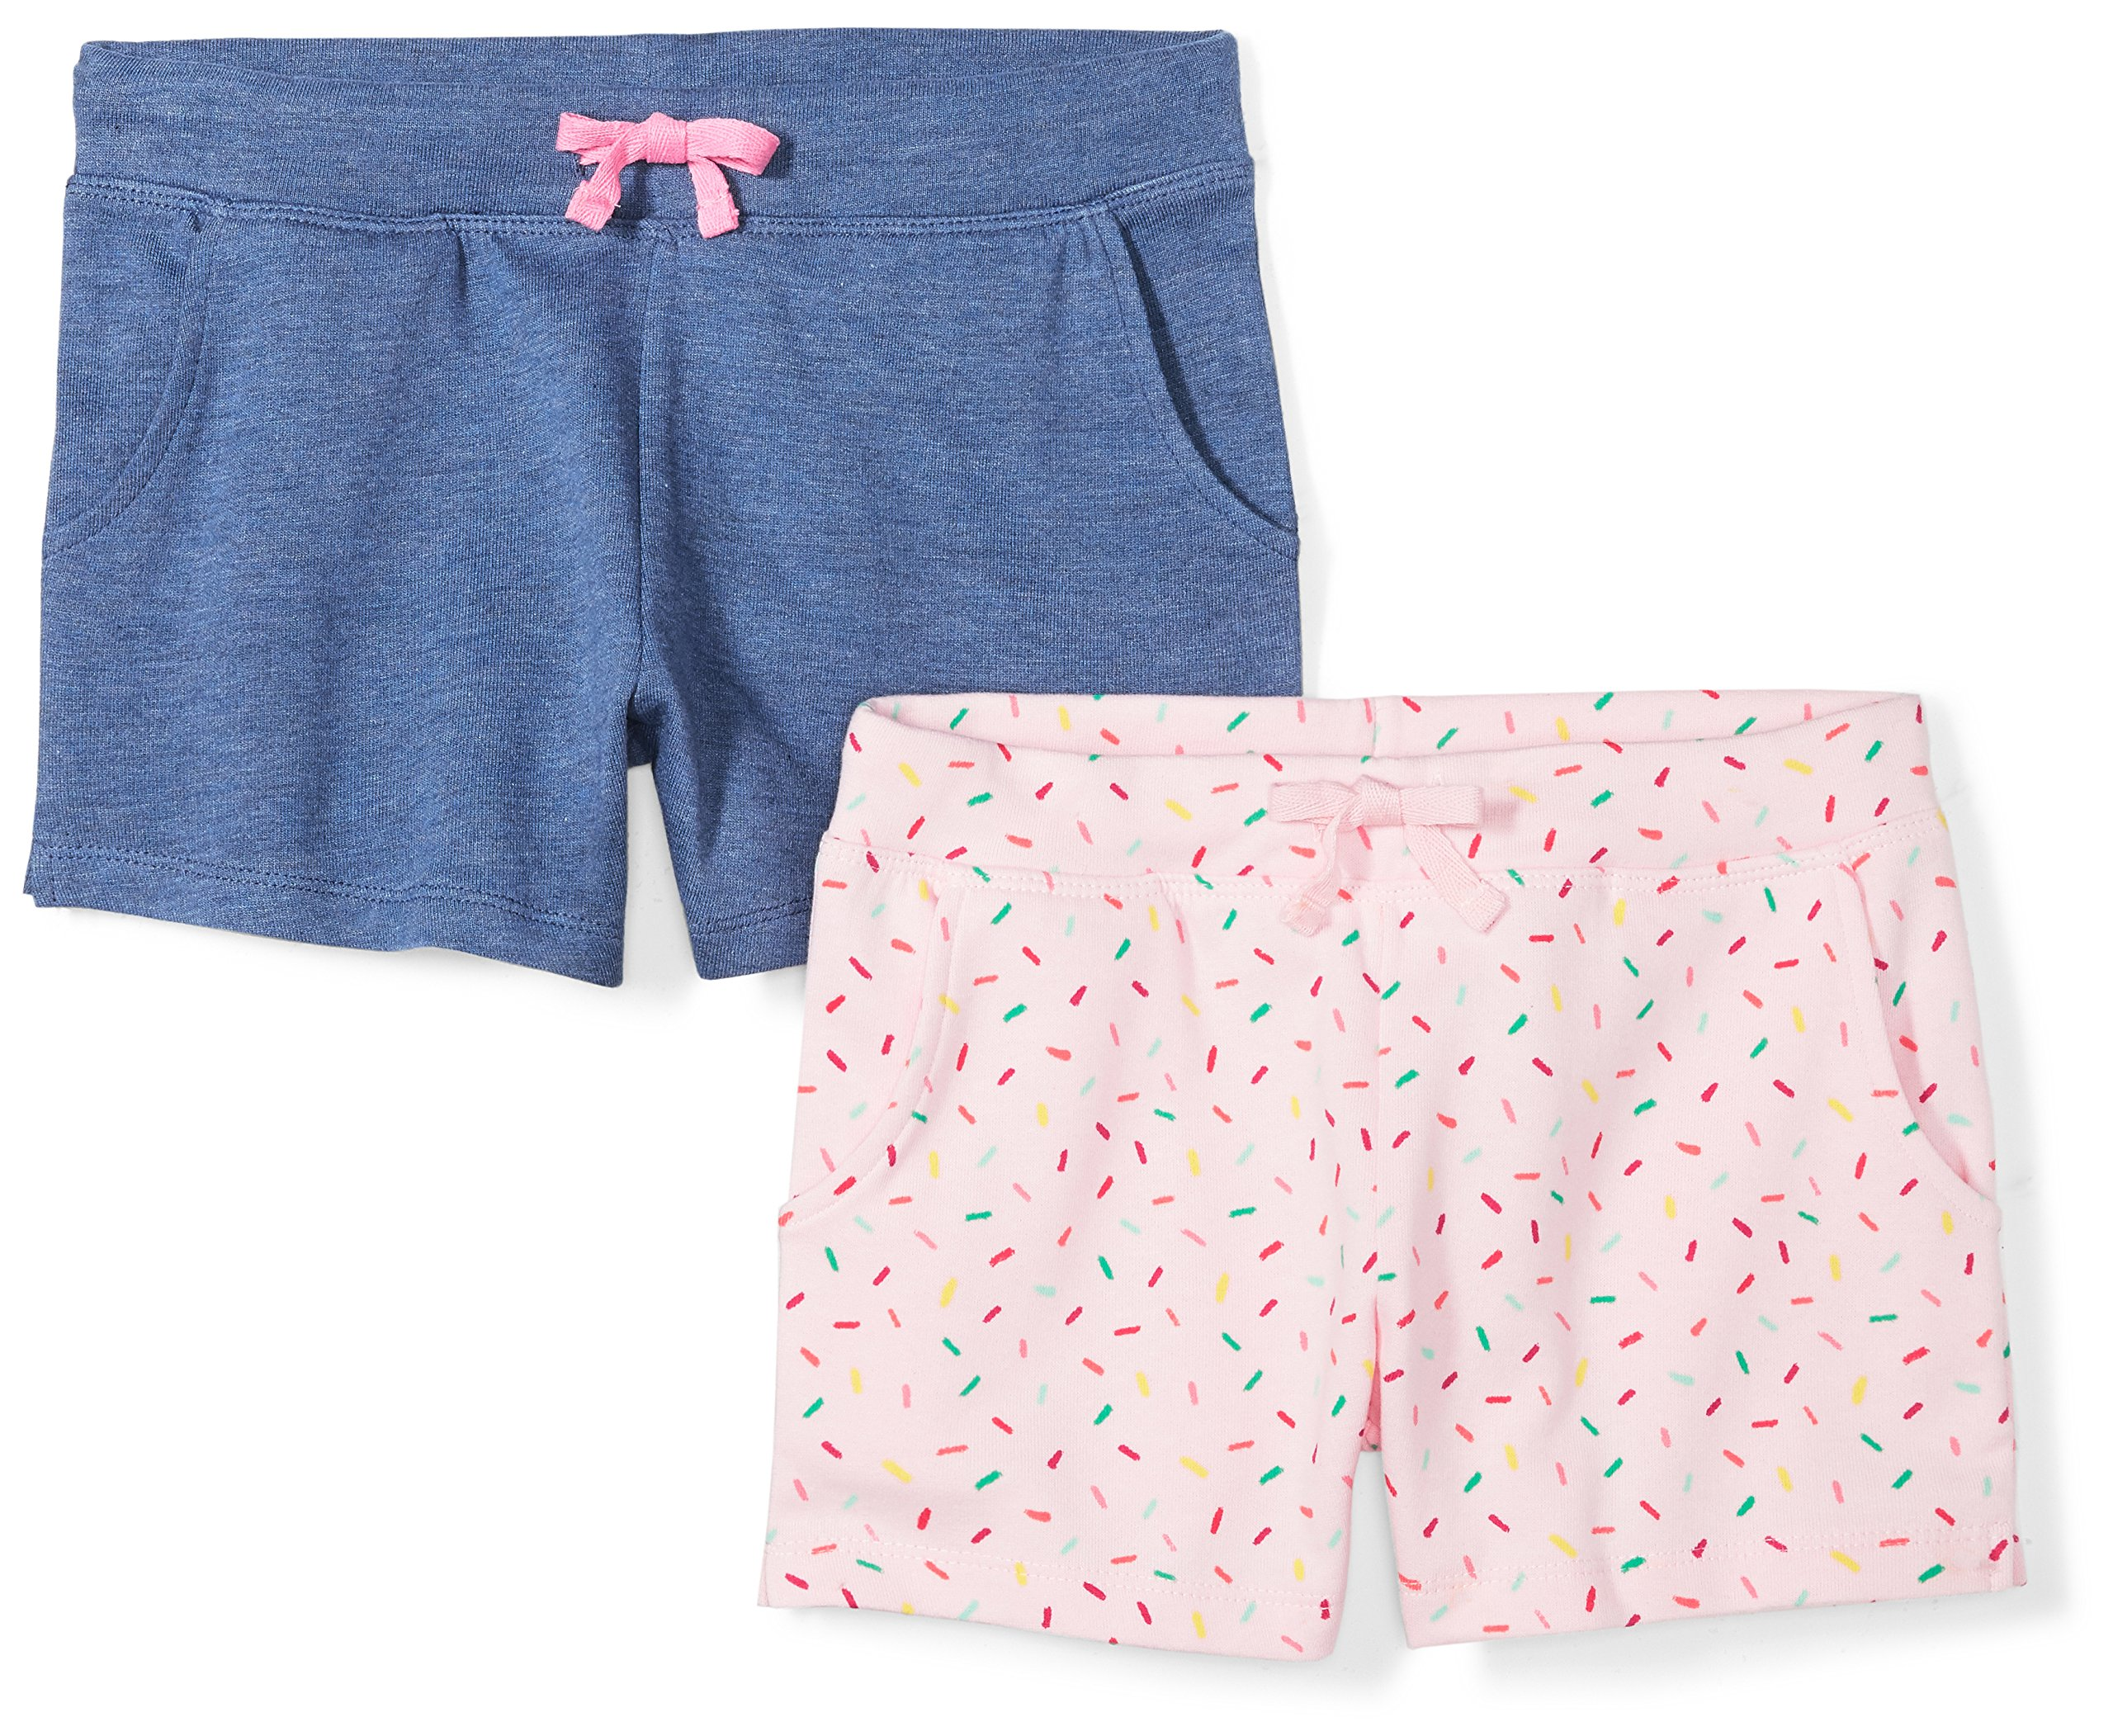 Spotted Zebra Little Girls' 2-Pack French Terry Knit Shorts, Sweets, Small (6-7)